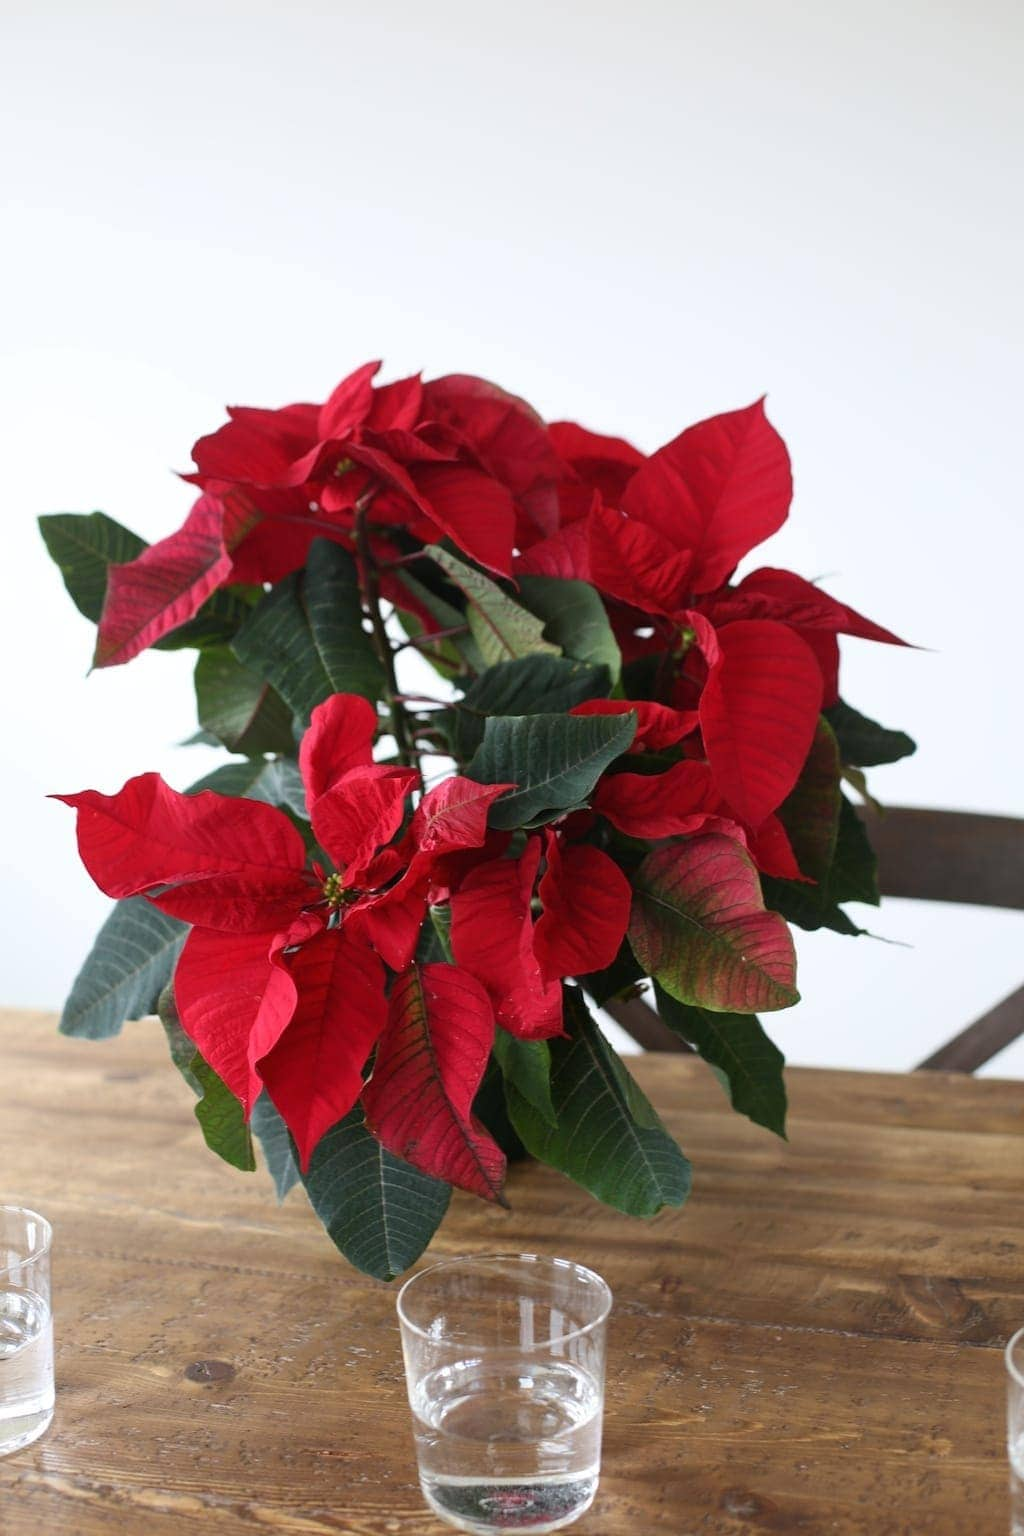 Get the recipe to create a gorgeous poinsettia centerpiece for just $5!